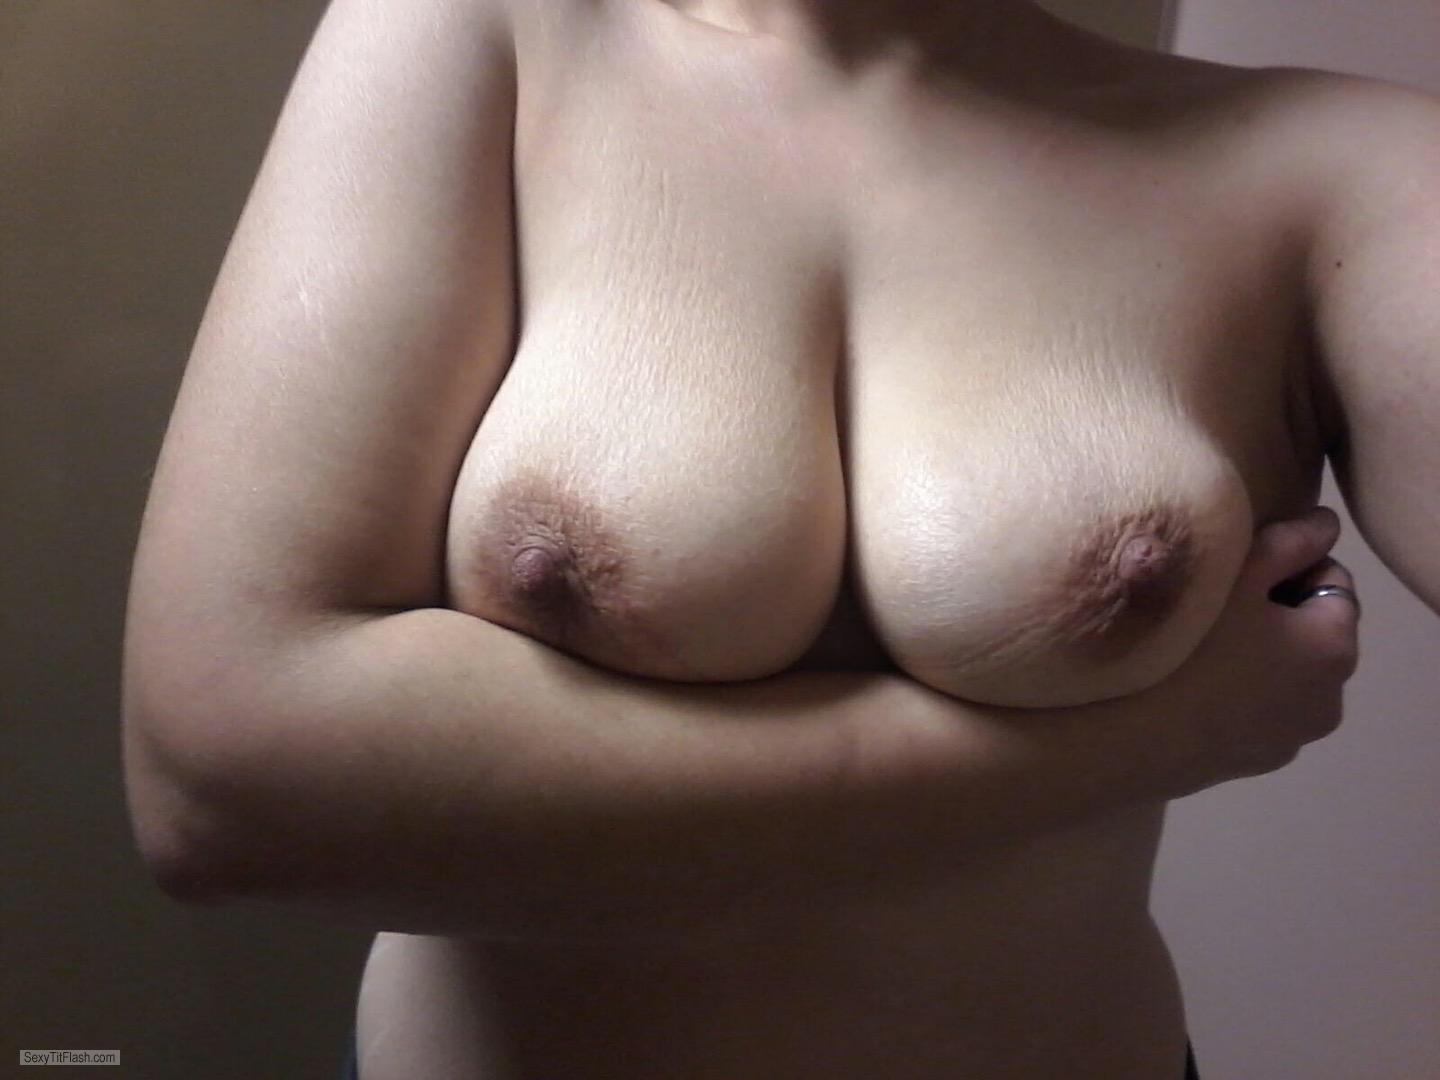 Tit Flash: My Medium Tits (Selfie) - Horney from United States